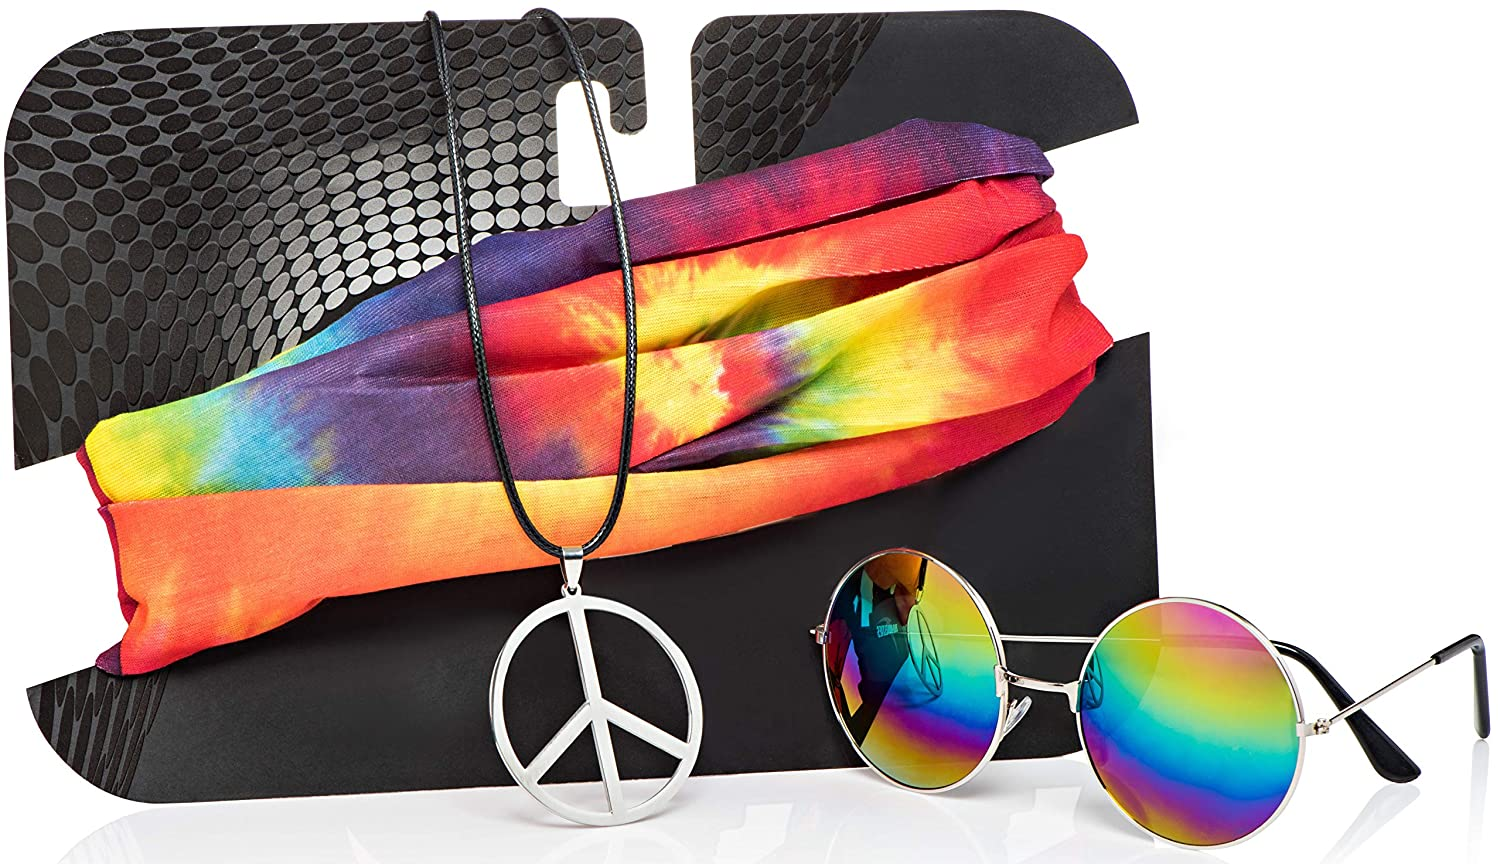 1960s Sunglasses | 70s Sunglasses, 70s Glasses Hippie Costume Set for Women & Men. Kit Includes Sunglasses Peace Sign Necklace & Headband to Make You The Hit of The Party $13.98 AT vintagedancer.com